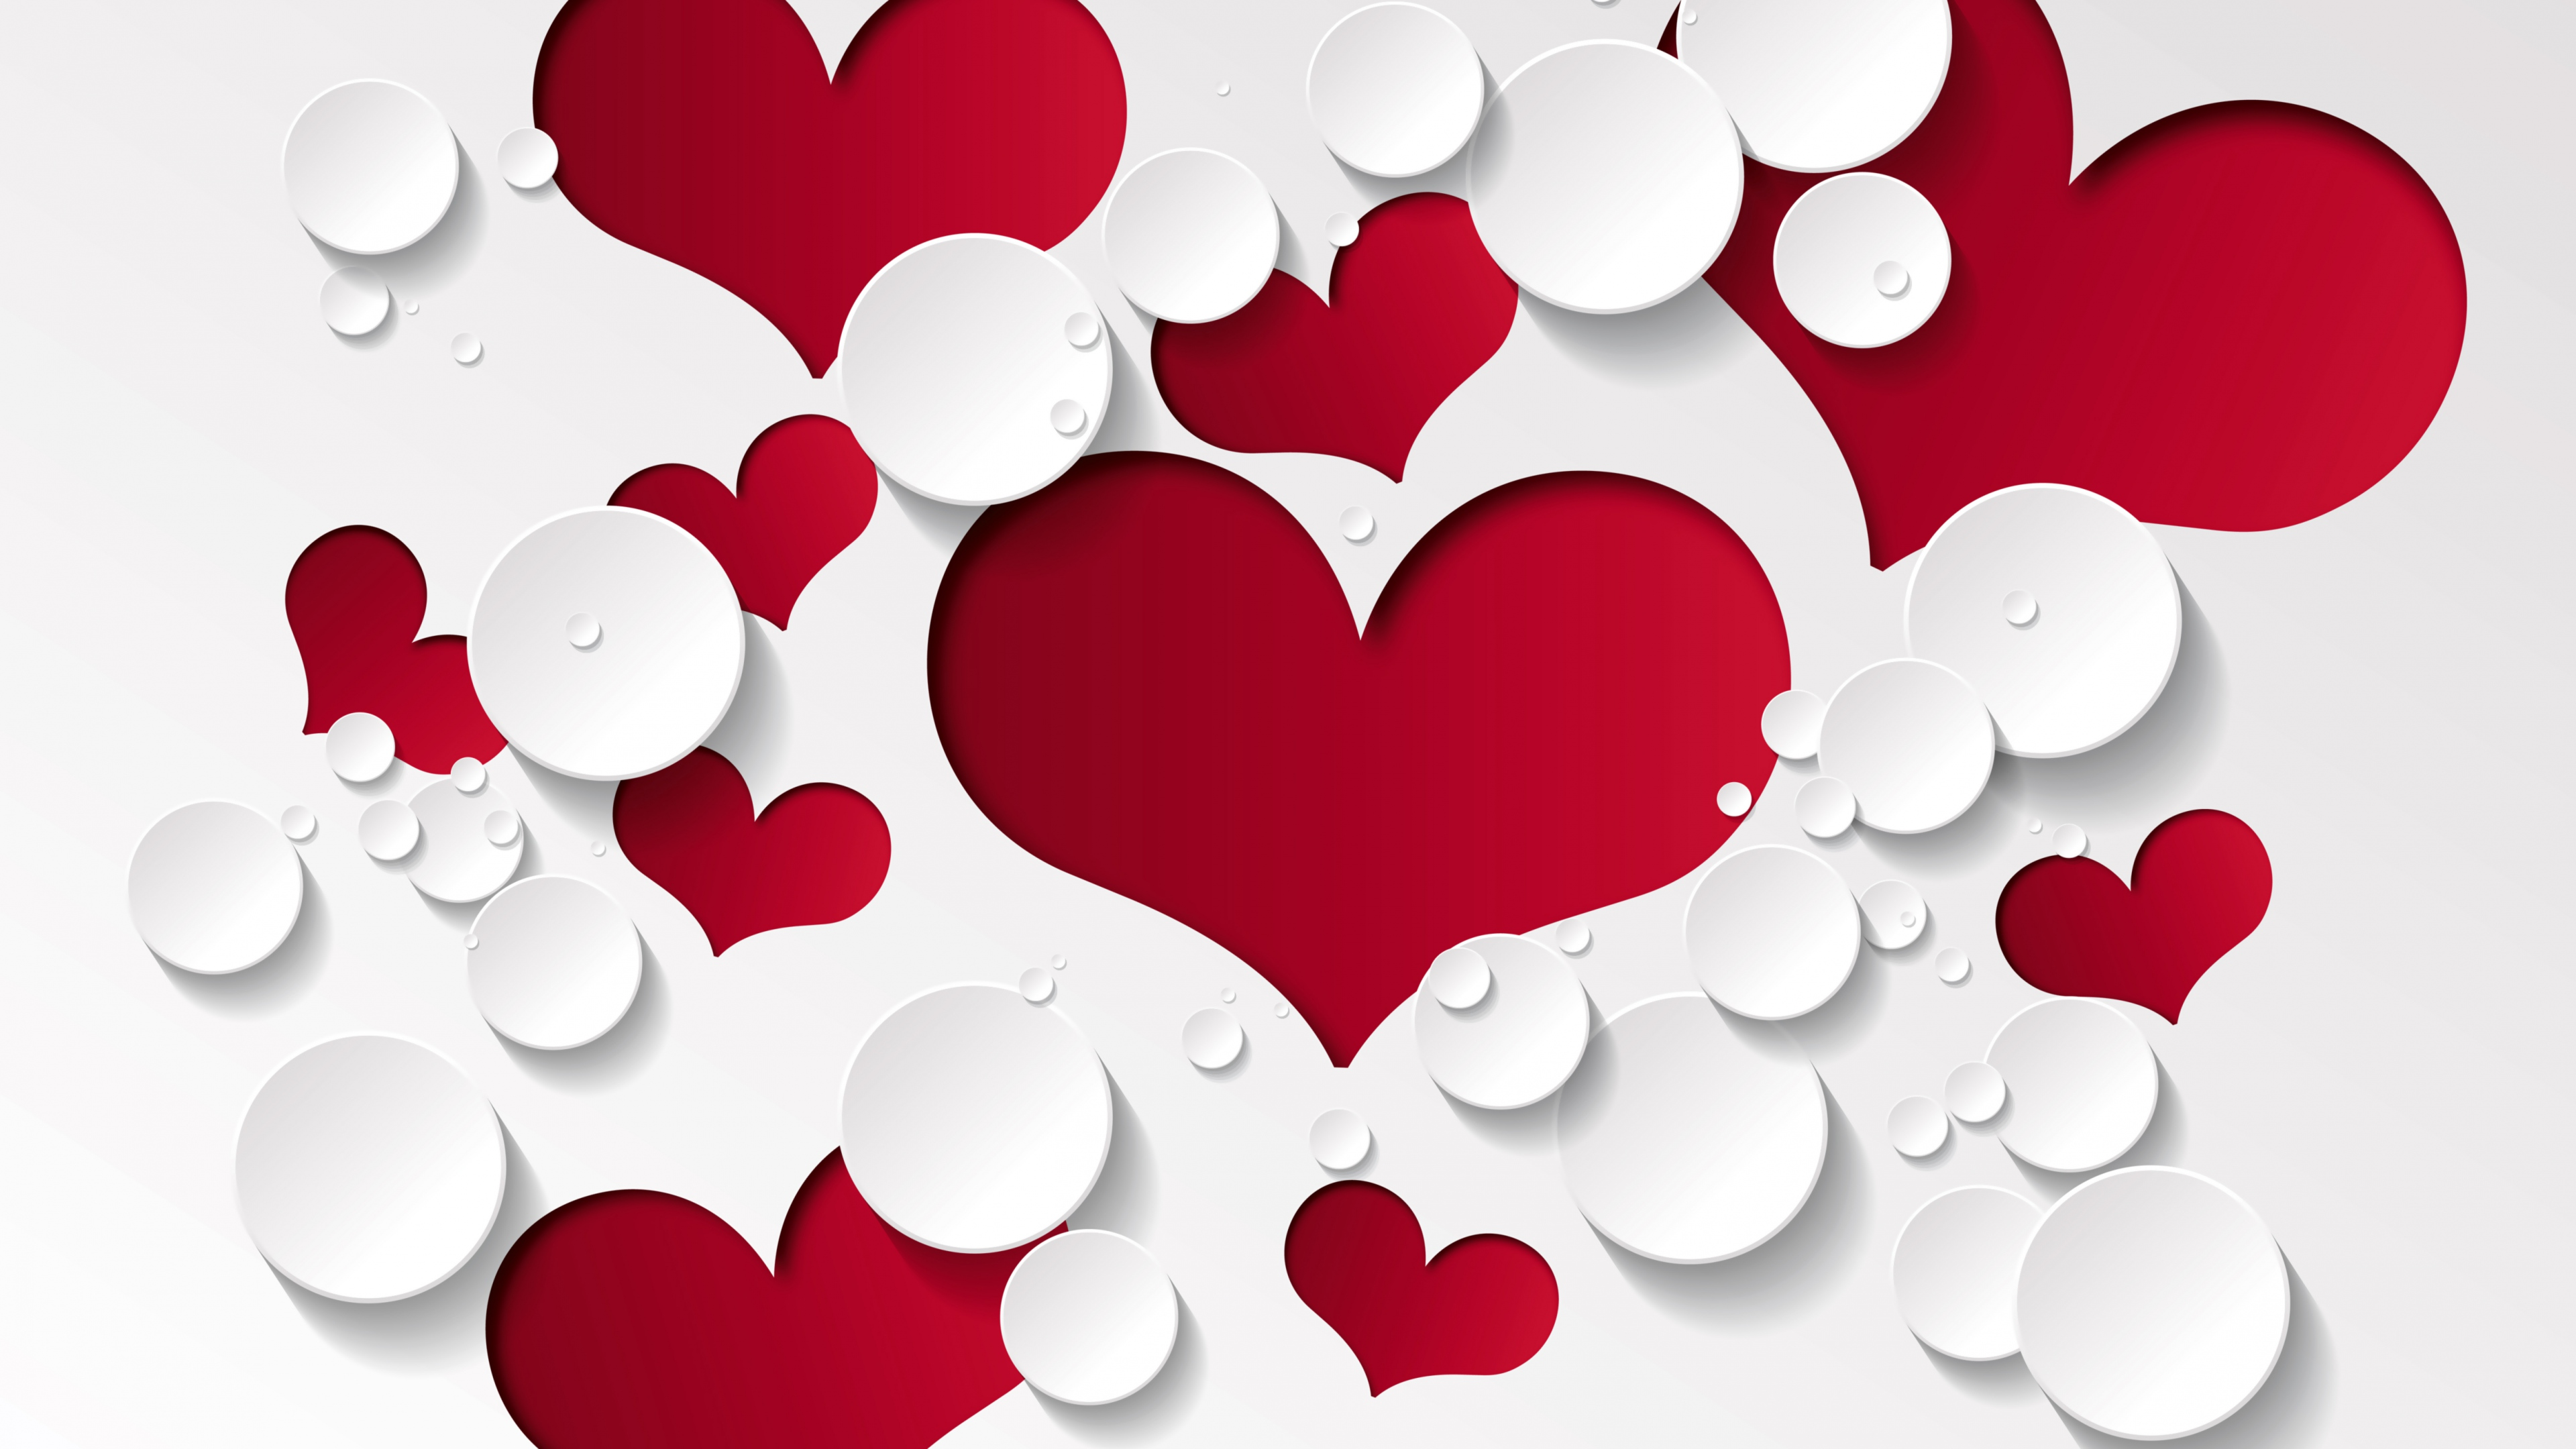 red and white love heart wallpaper hd